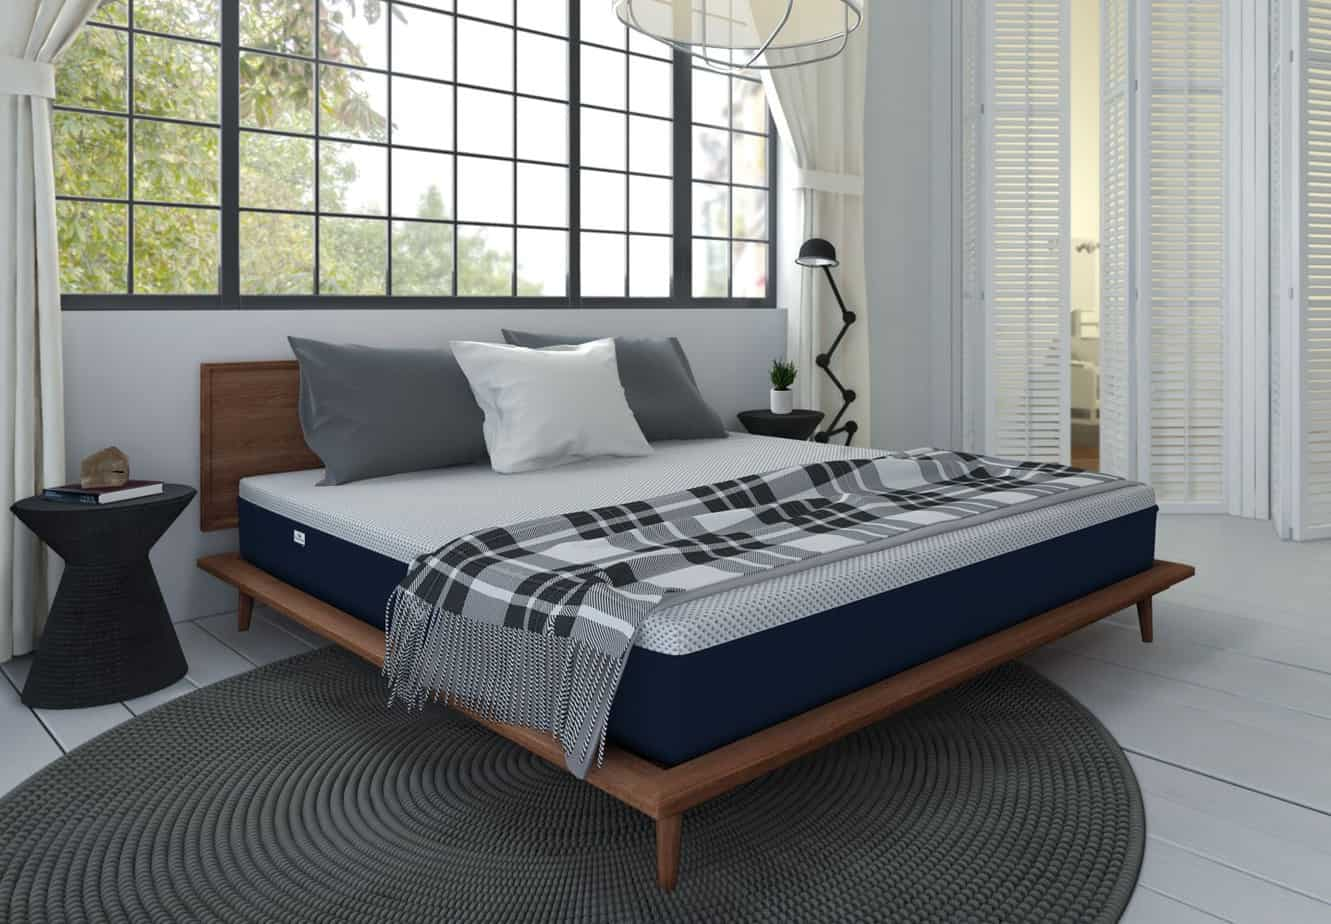 Helix Vs Loom And Leaf Amerisleep Vs Leesa Mattress Comparison